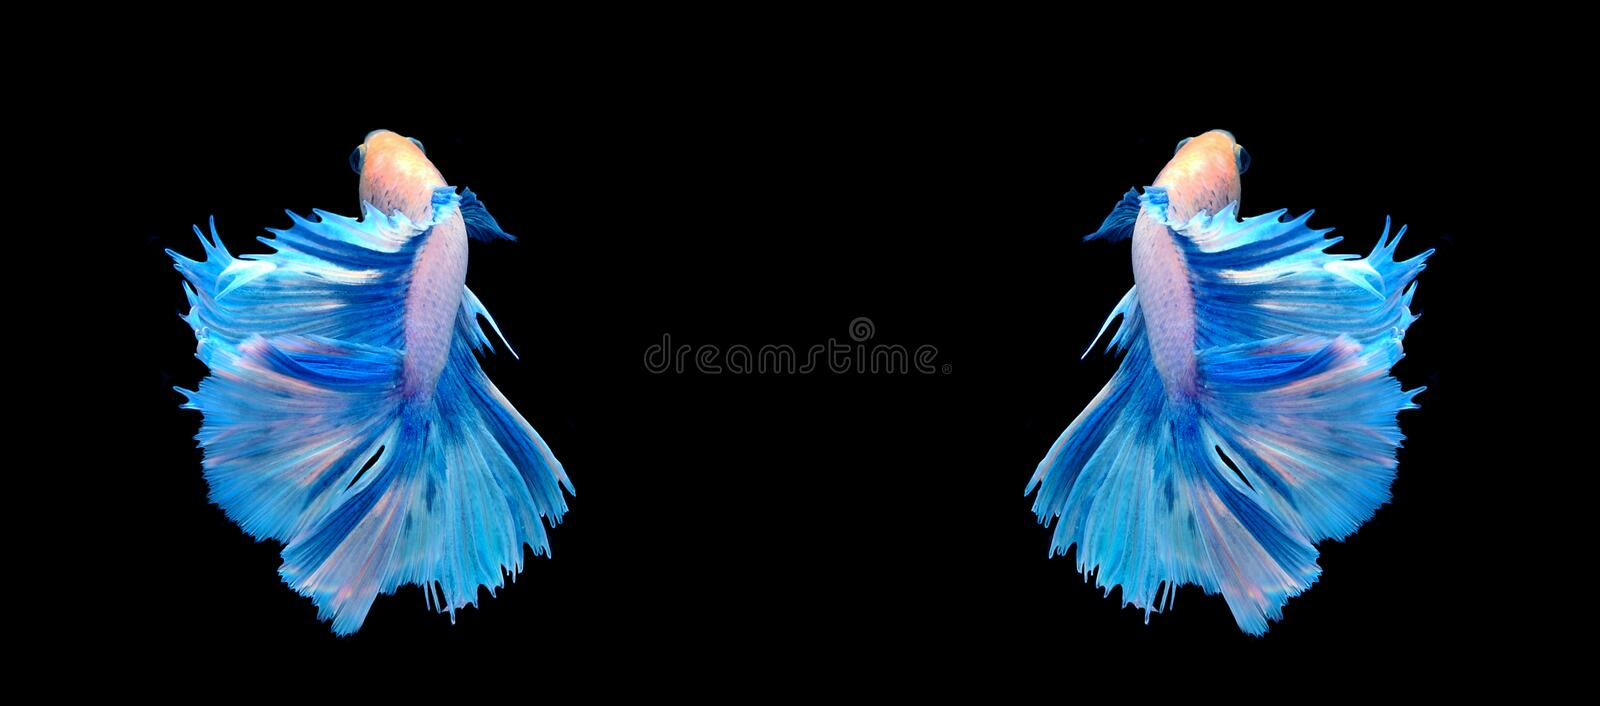 White and blue siamese fighting fish, betta fish isolated on bla. Ck background royalty free stock images